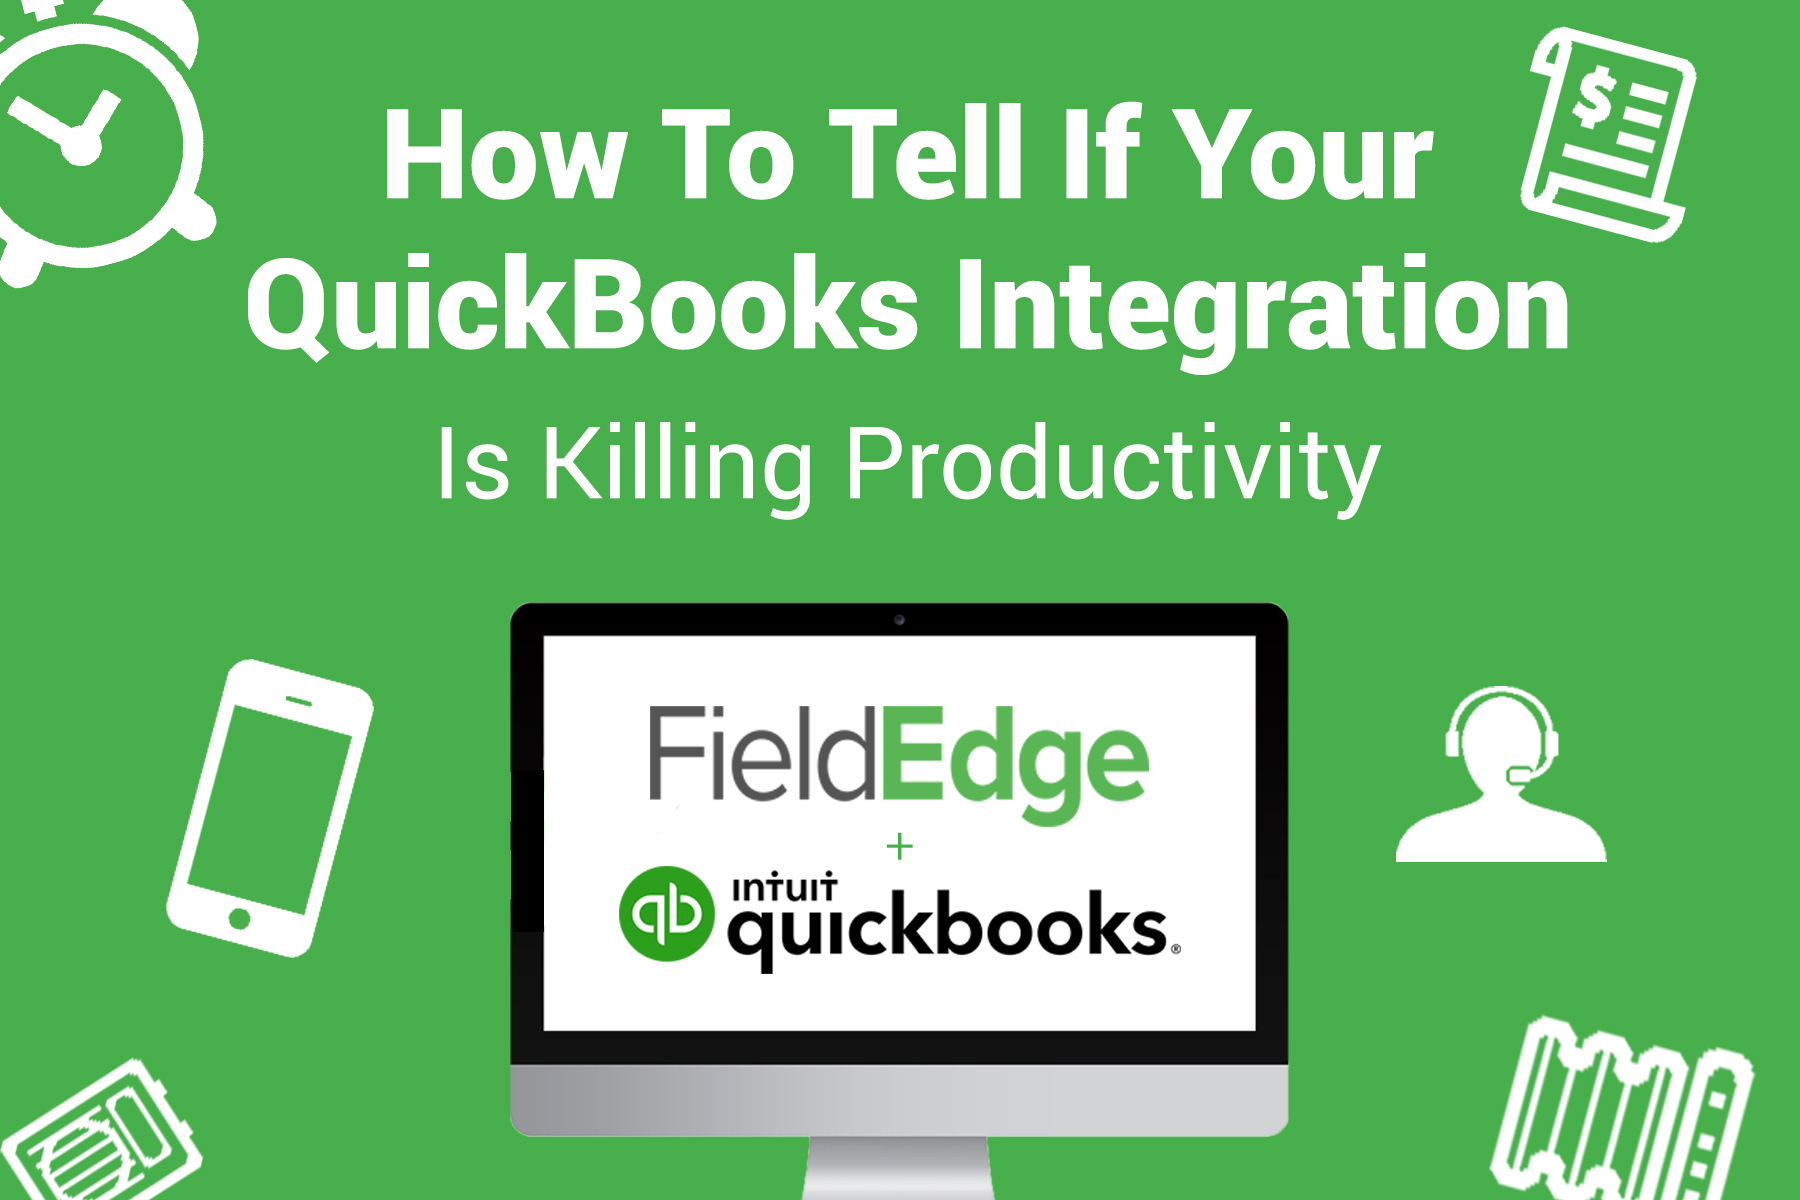 How To Tell If Your QuickBooks Integration Is Killing Productivity